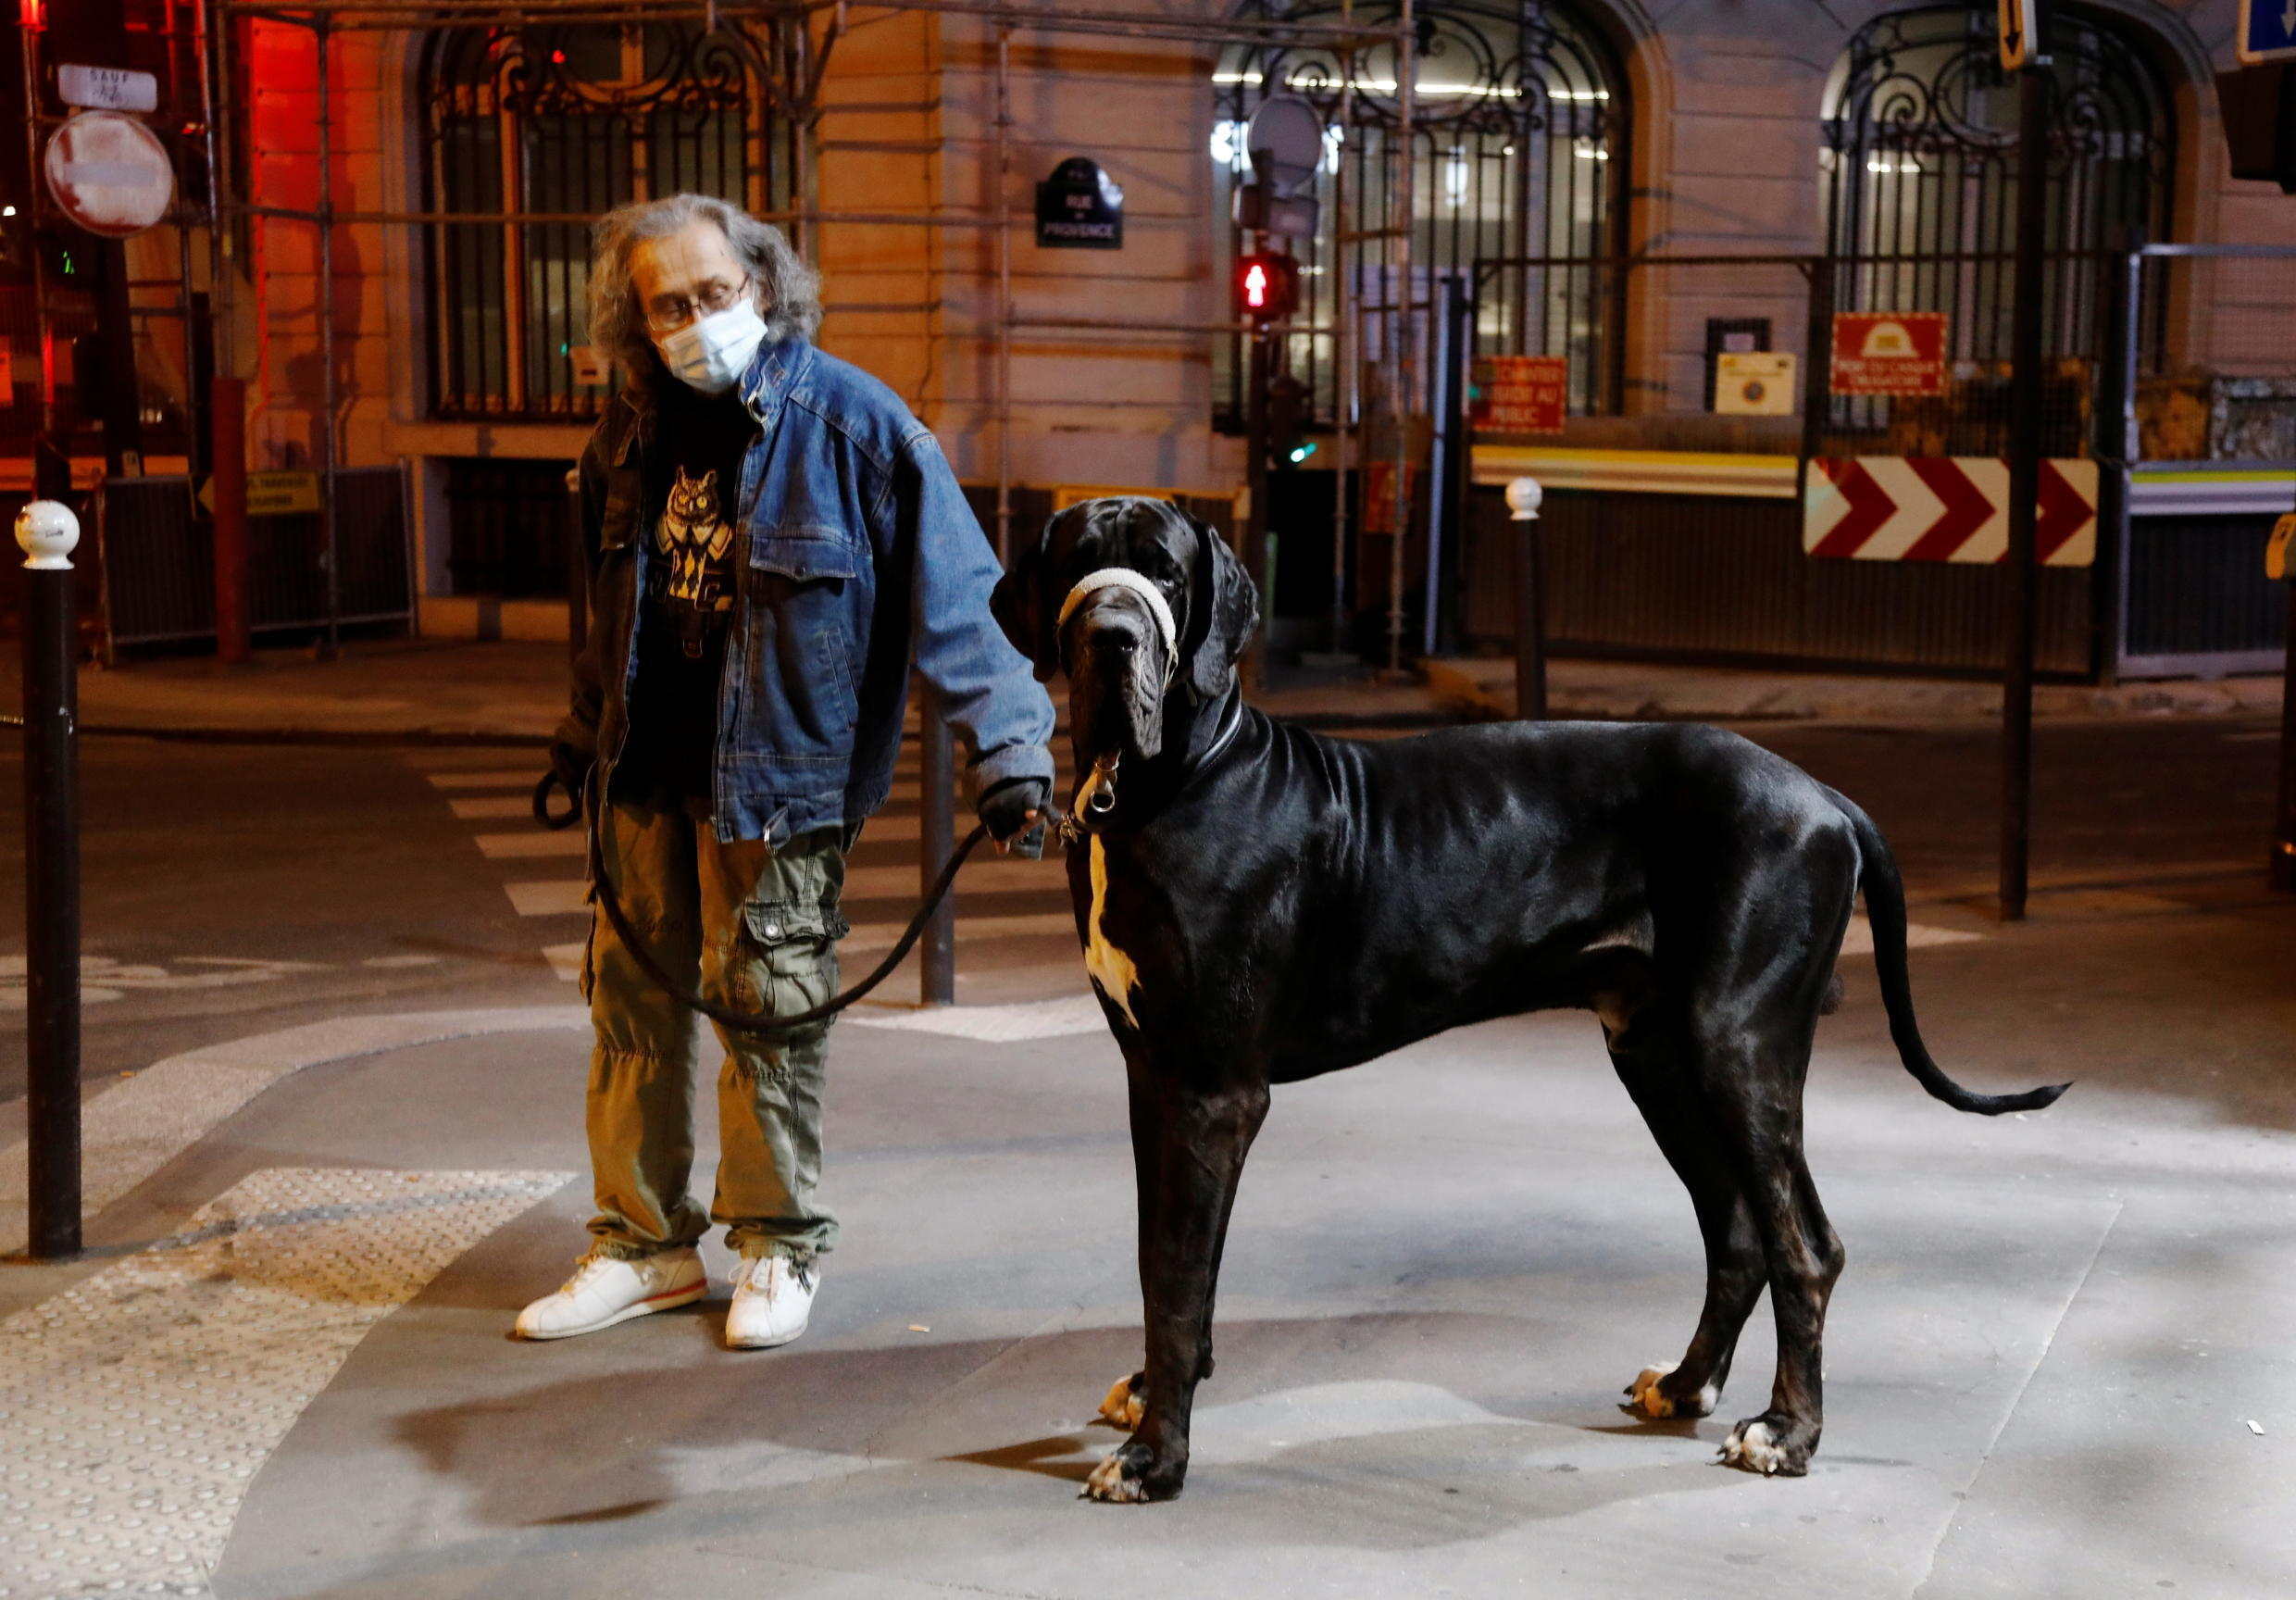 People will need a signed certificate or an electronic version downloaded to a phone for activities allowed during the curfew, such as walking their dog.